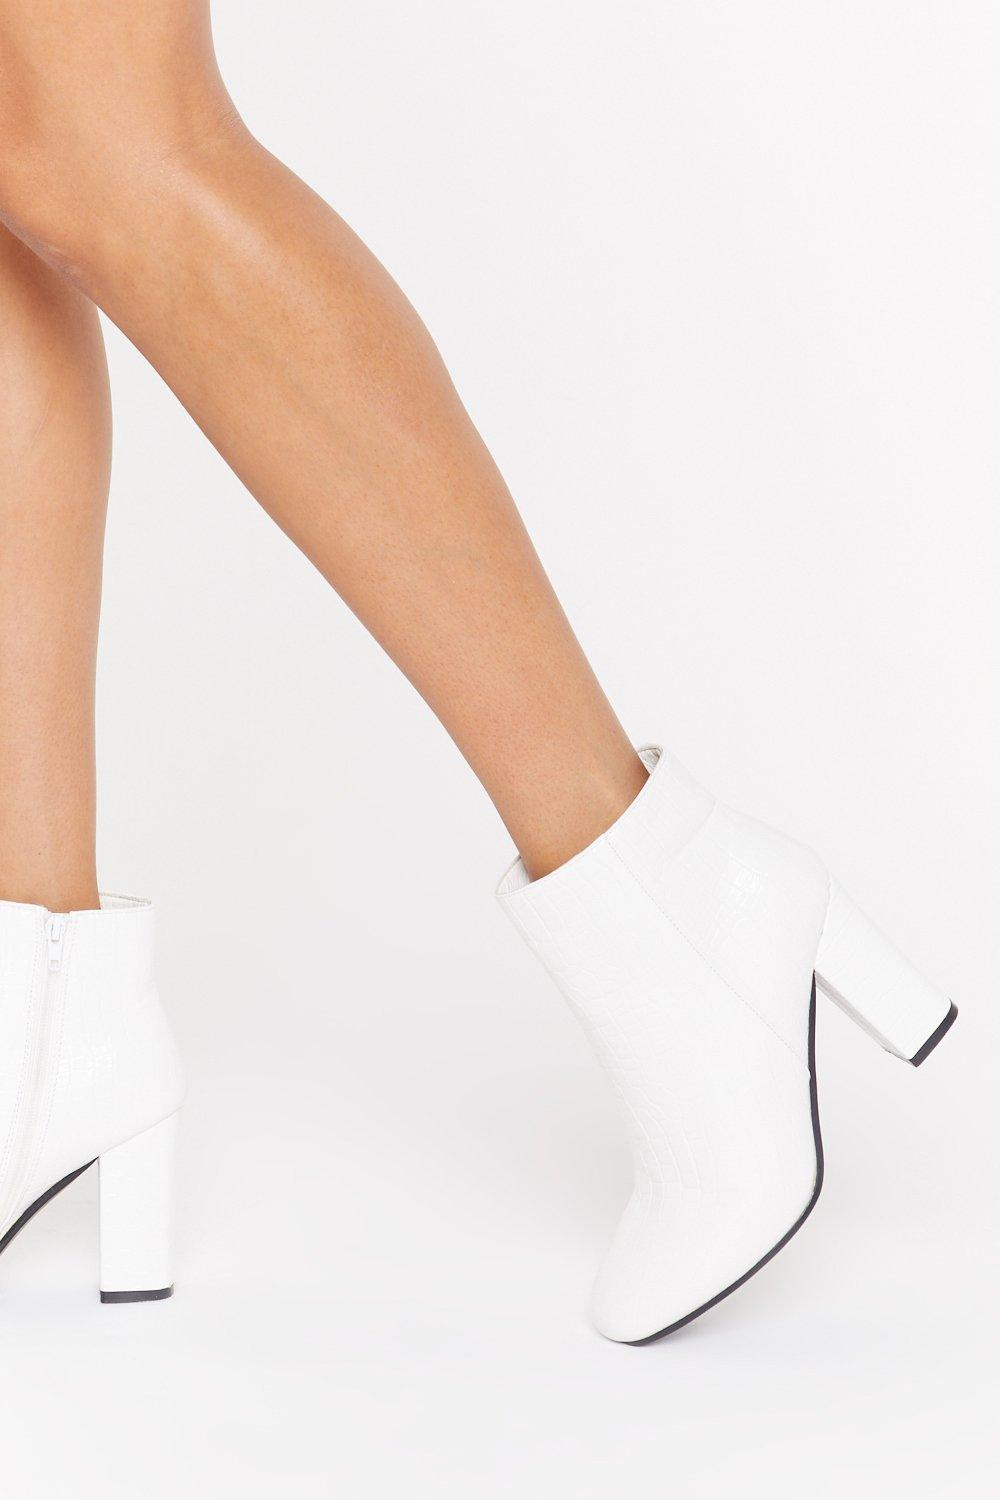 Croc Ing On Heaven's Door Faux Leather Boots by Nasty Gal